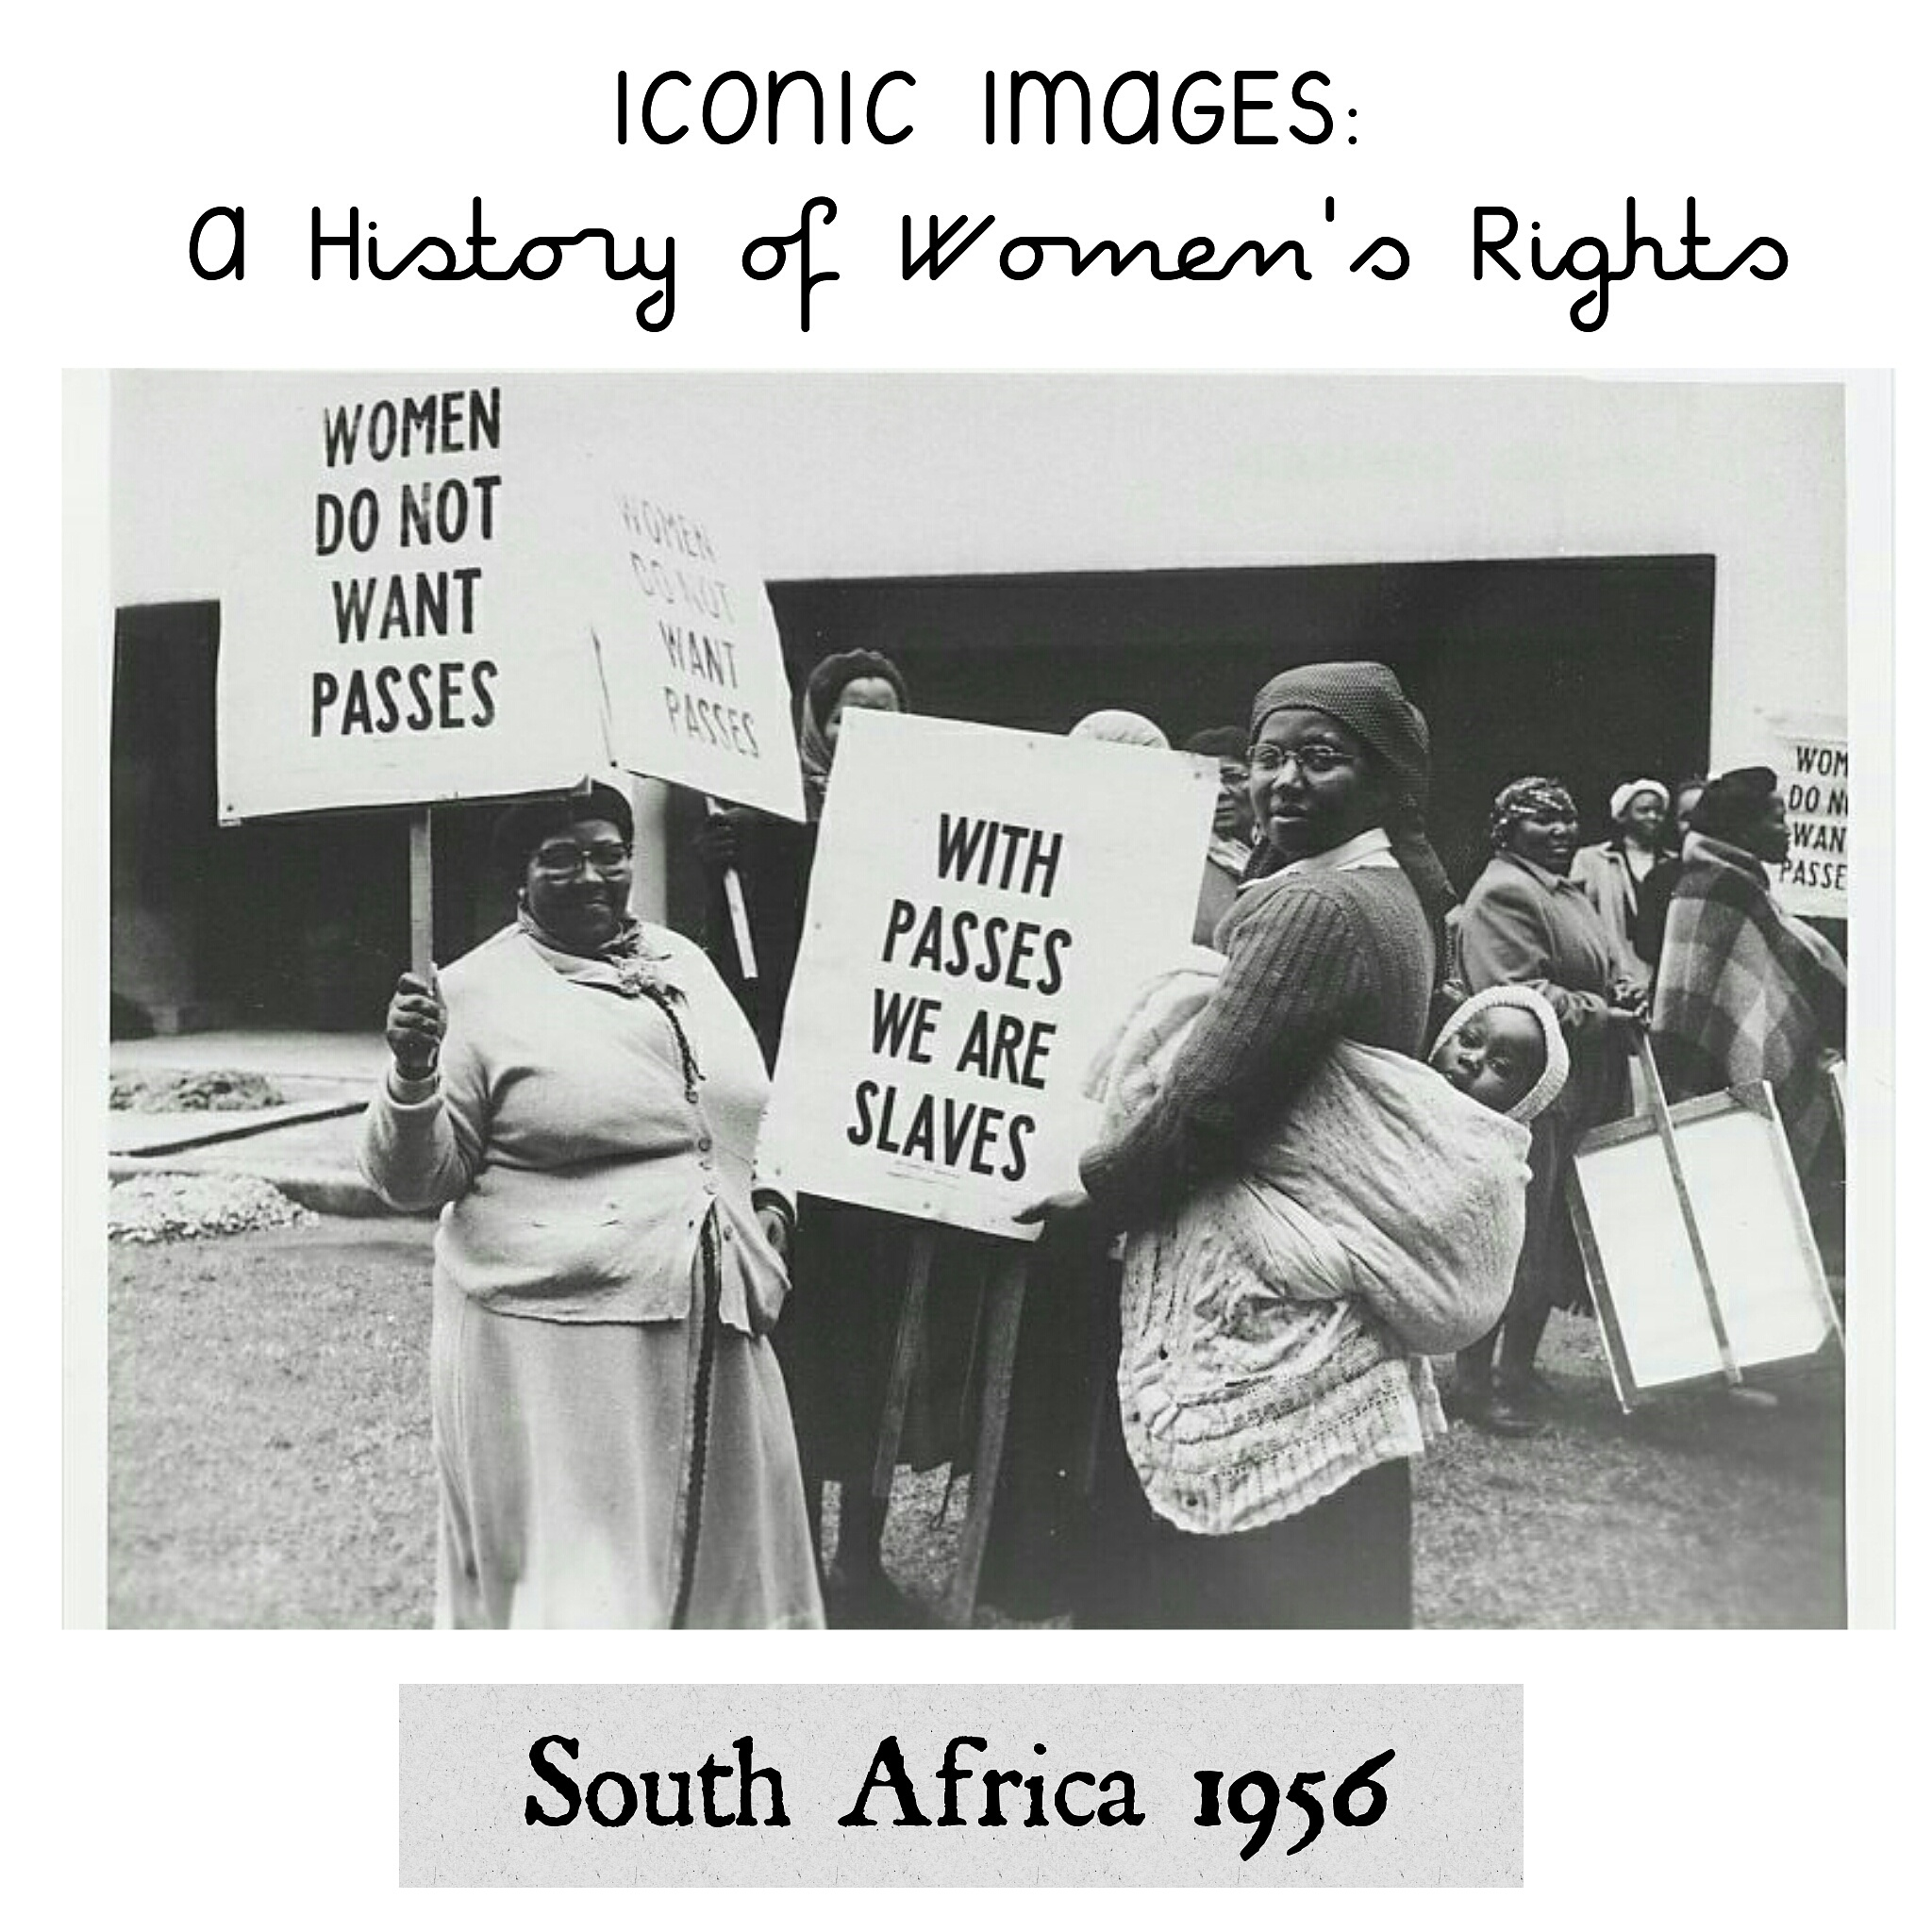 National Women's Protest, South Africa 1956 - Here we see women demonstrate against the Pass Laws in Cape Town on August 9th 1956, on the same day as the massive national women's protest in Pretoria.The pass laws were a type of internal passport system designed to segregate the population, which severely limited the movements of the black African citizens. Before the 1950's it was largely applied to African men, and attempts to apply it to women was met with overwhelming protests.Image source: www.overcomingaparthied.msu.edu